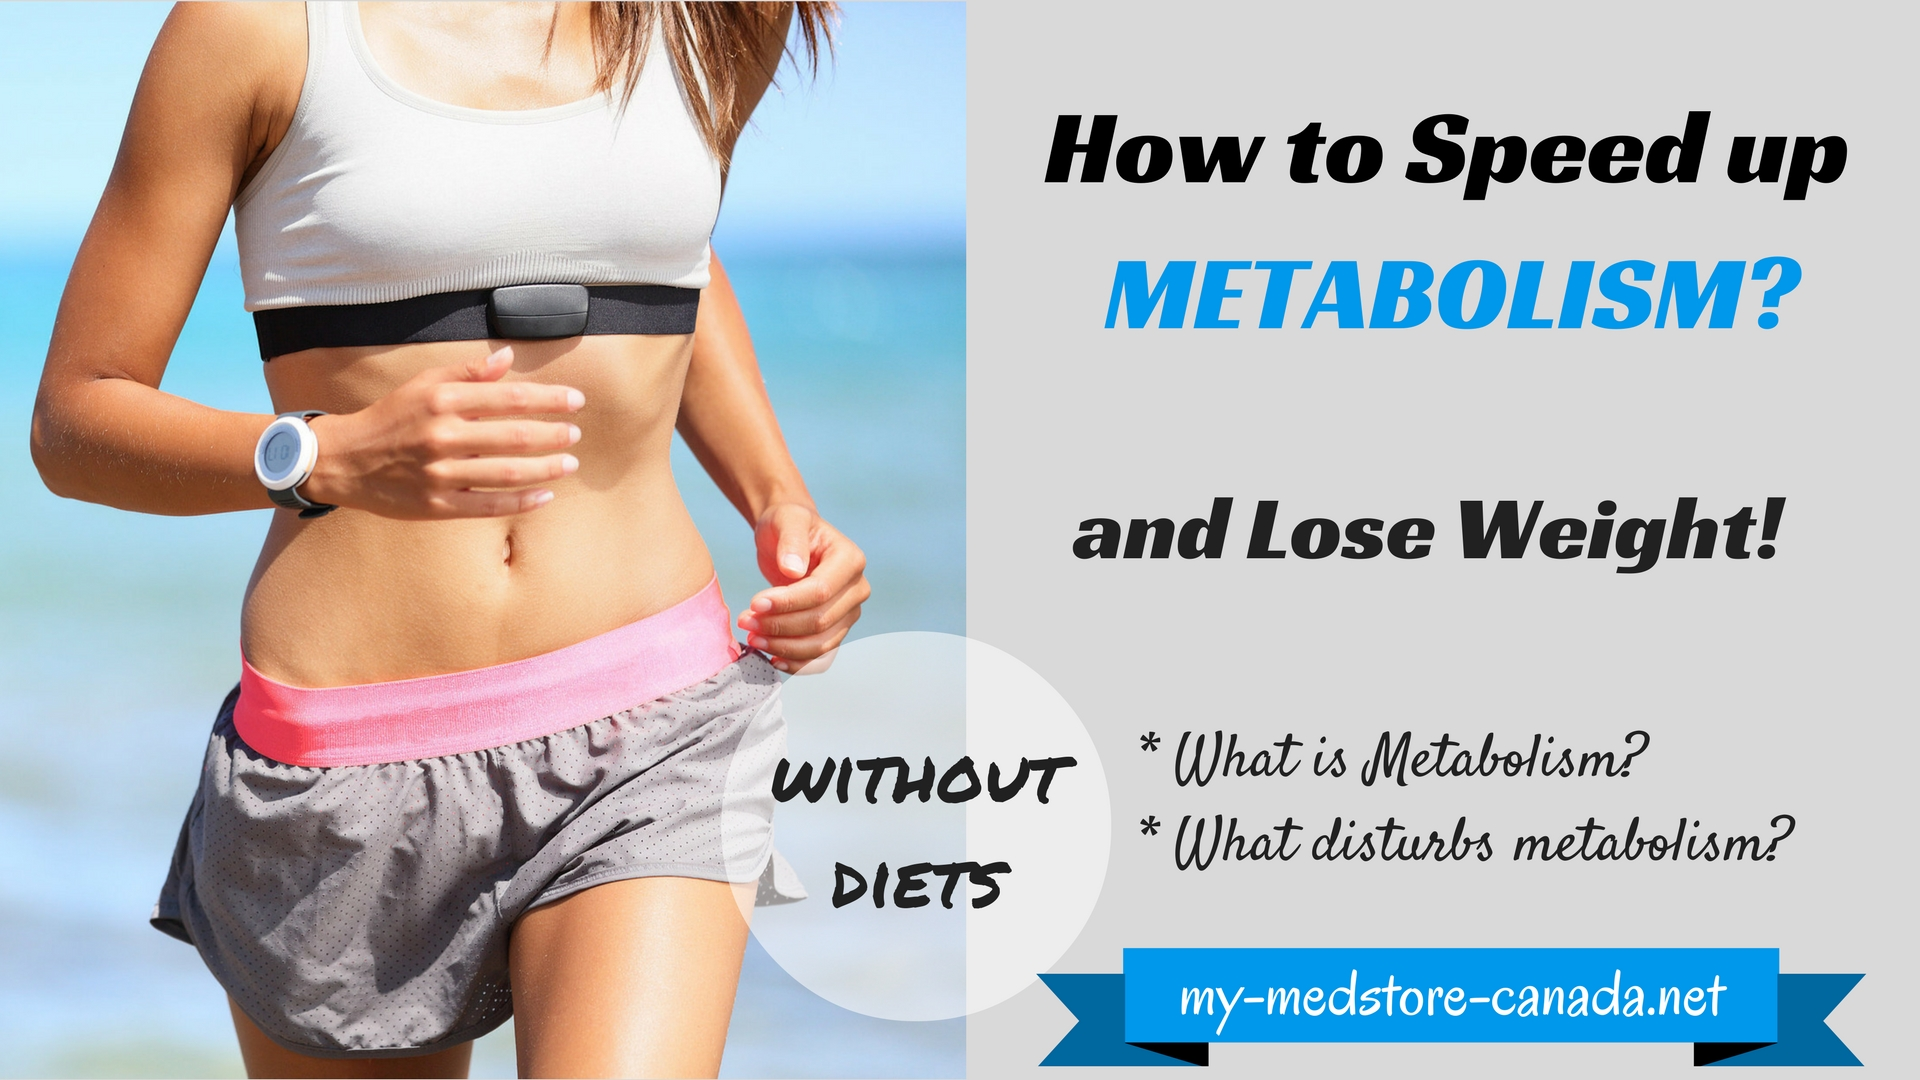 How to Speed up METABOLISM?